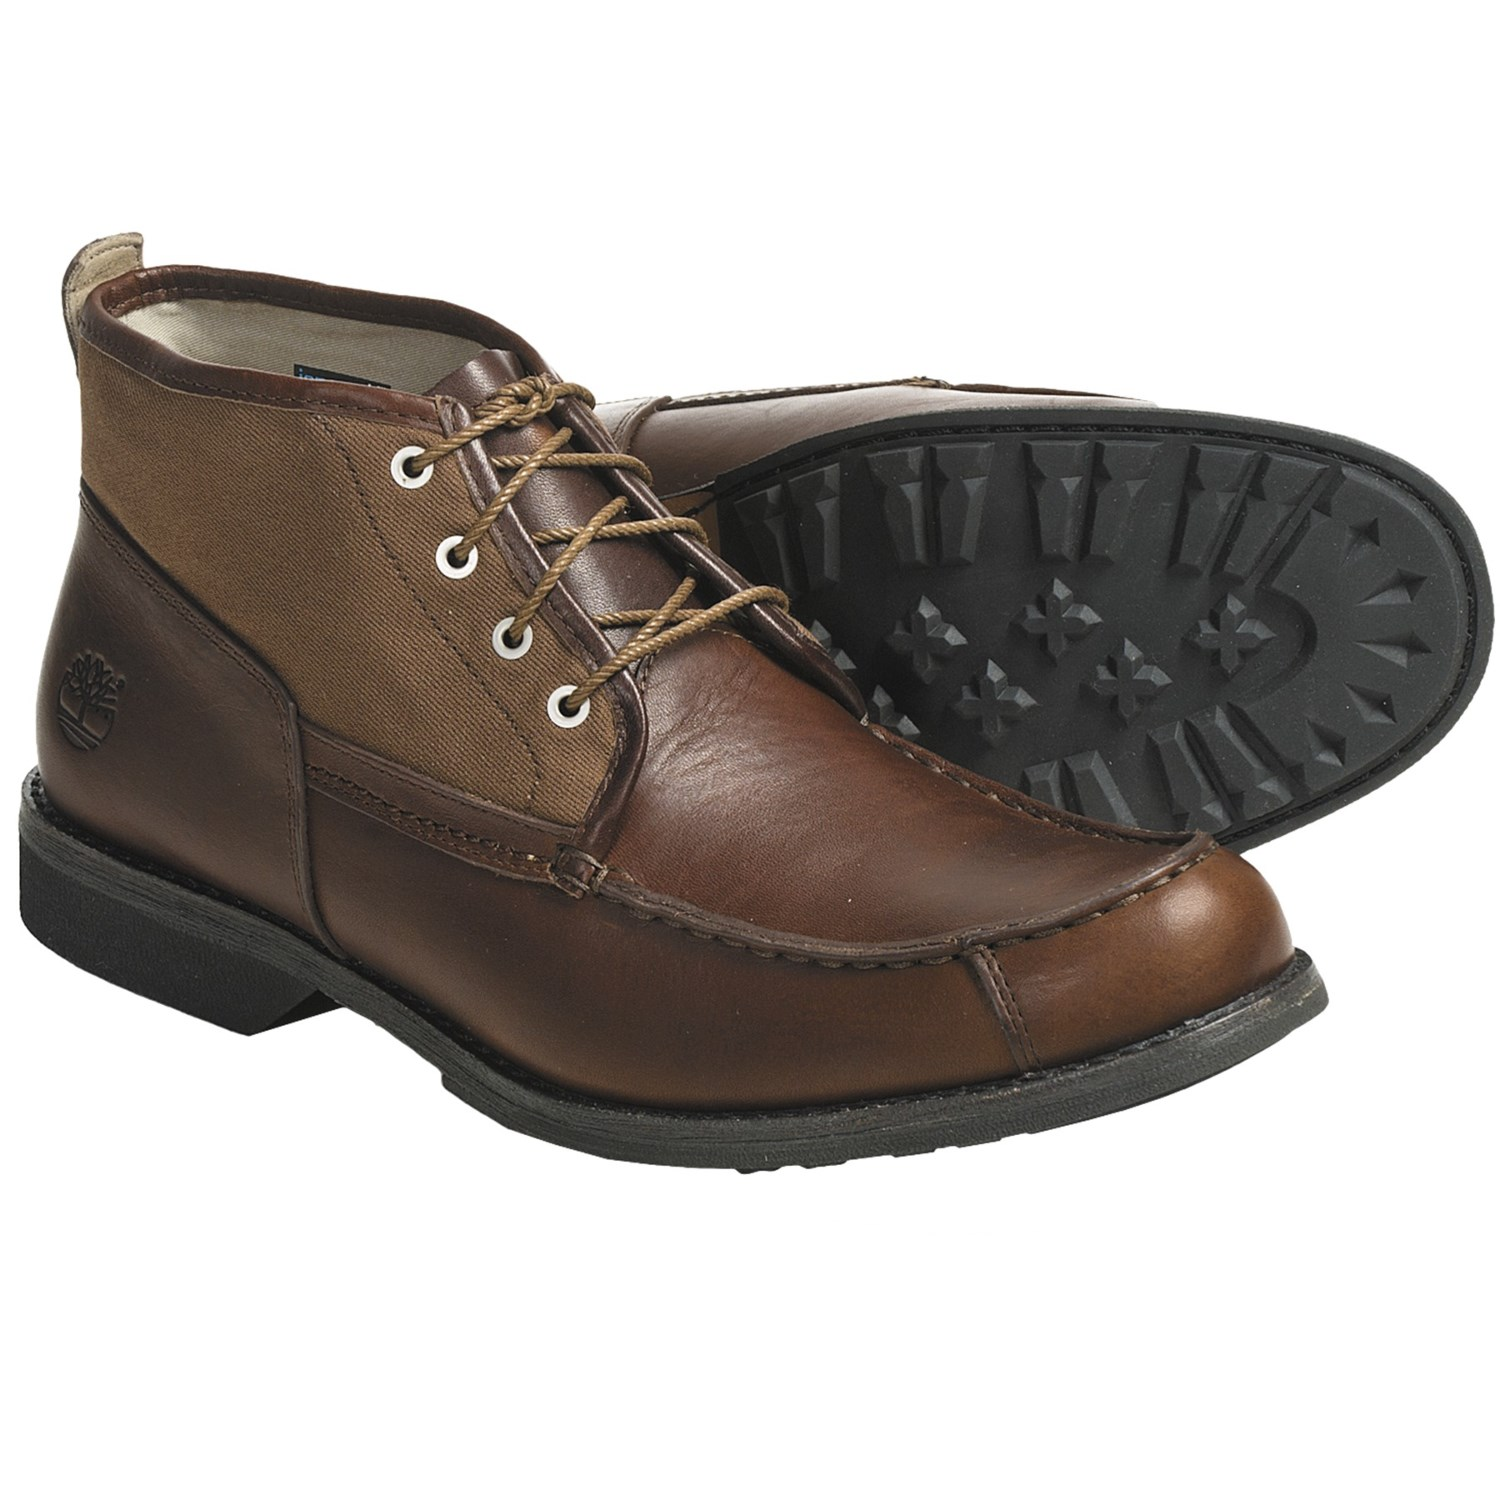 timberland earthkeepers city chukka boots for men 4336n